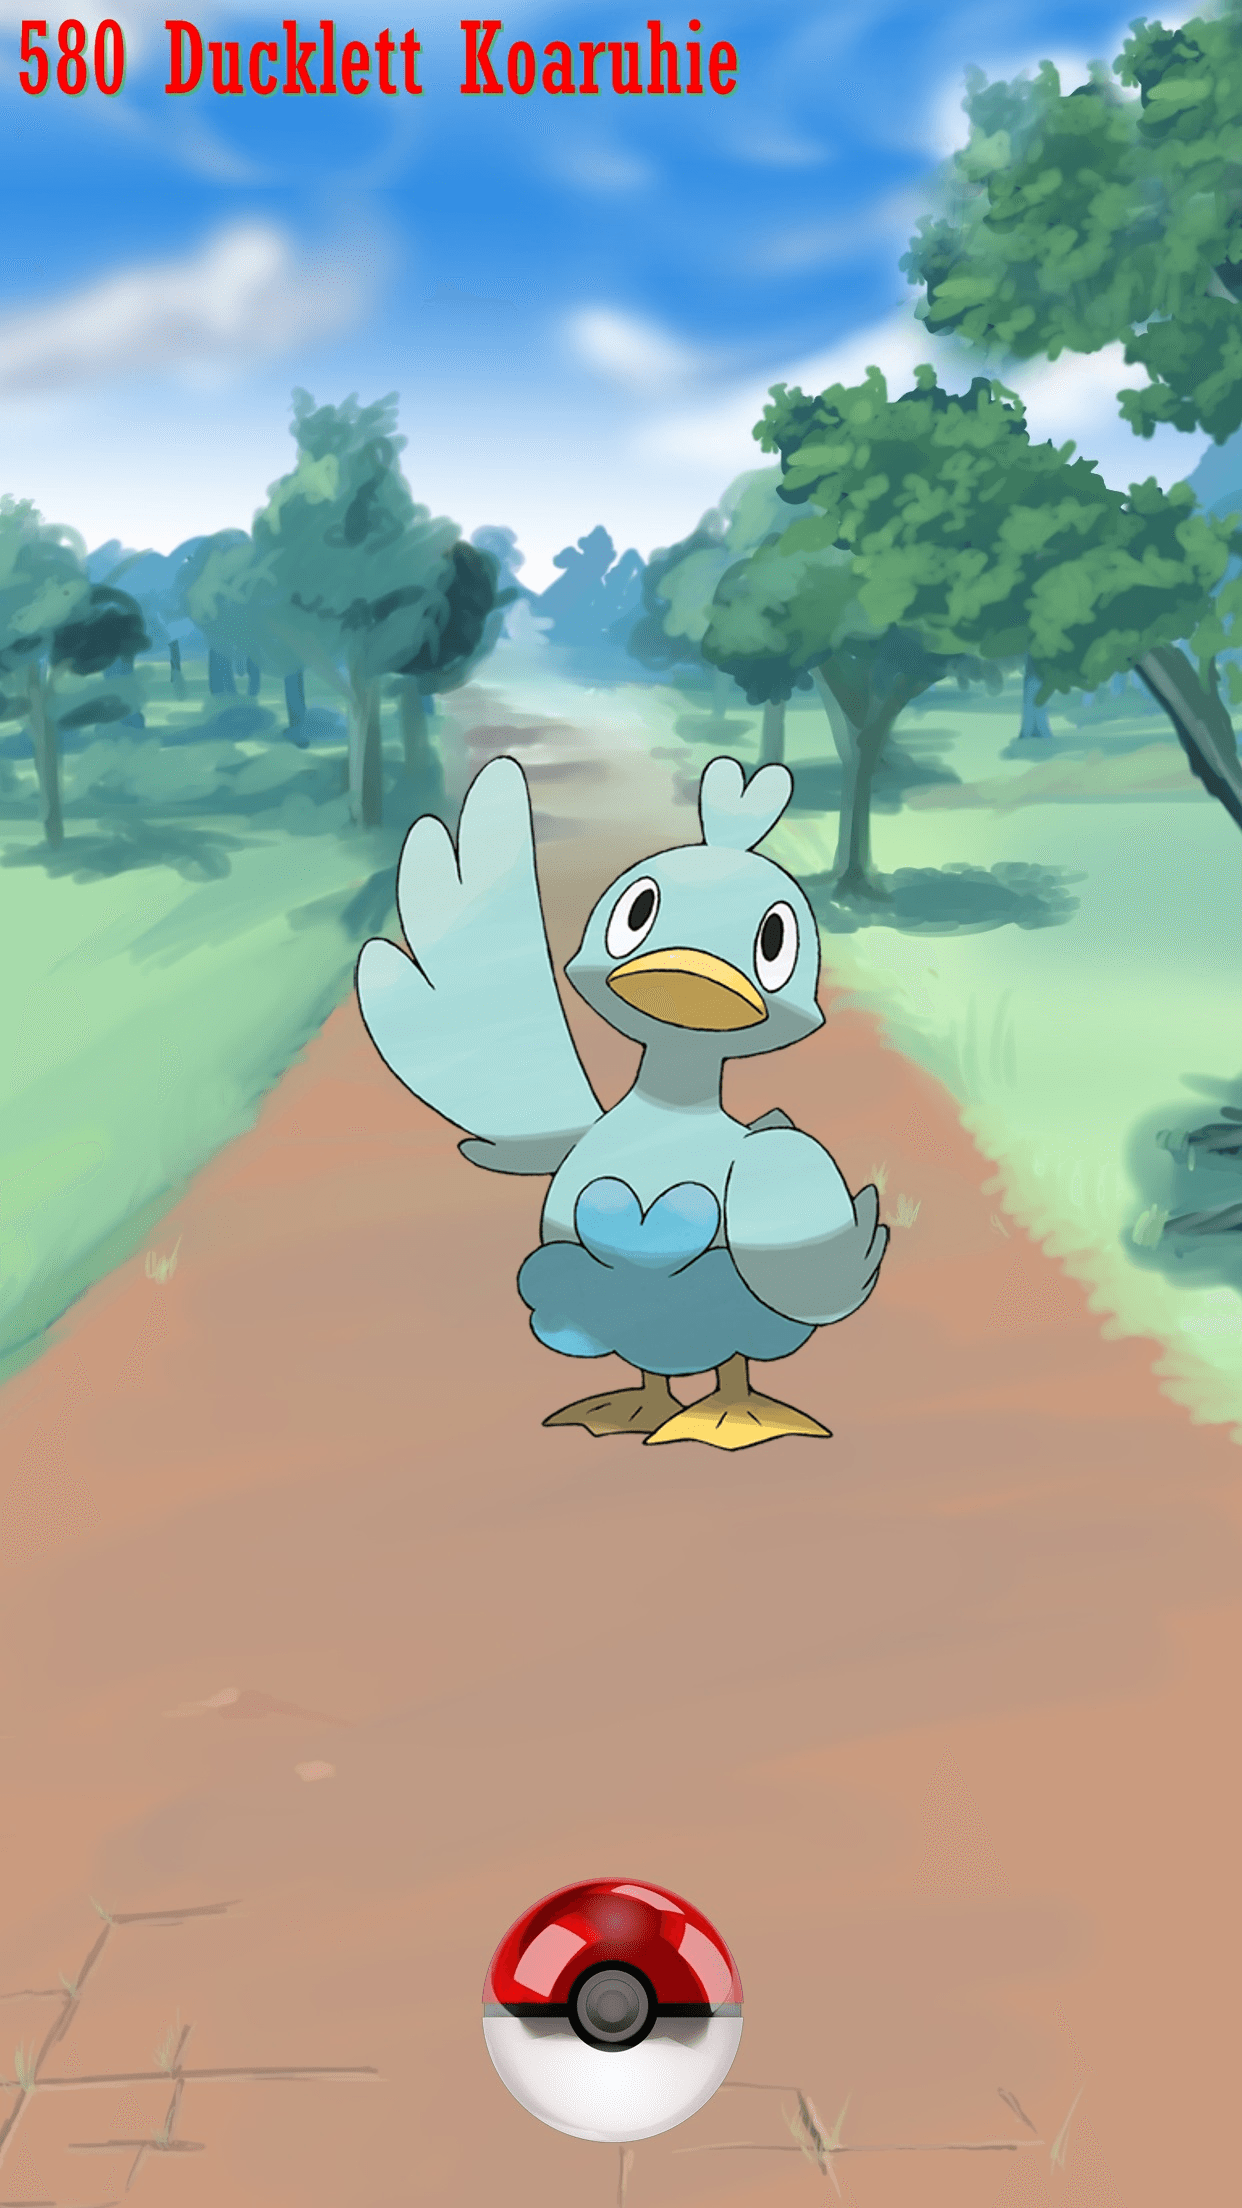 580 Street Pokeball Ducklett Koaruhie | Wallpaper